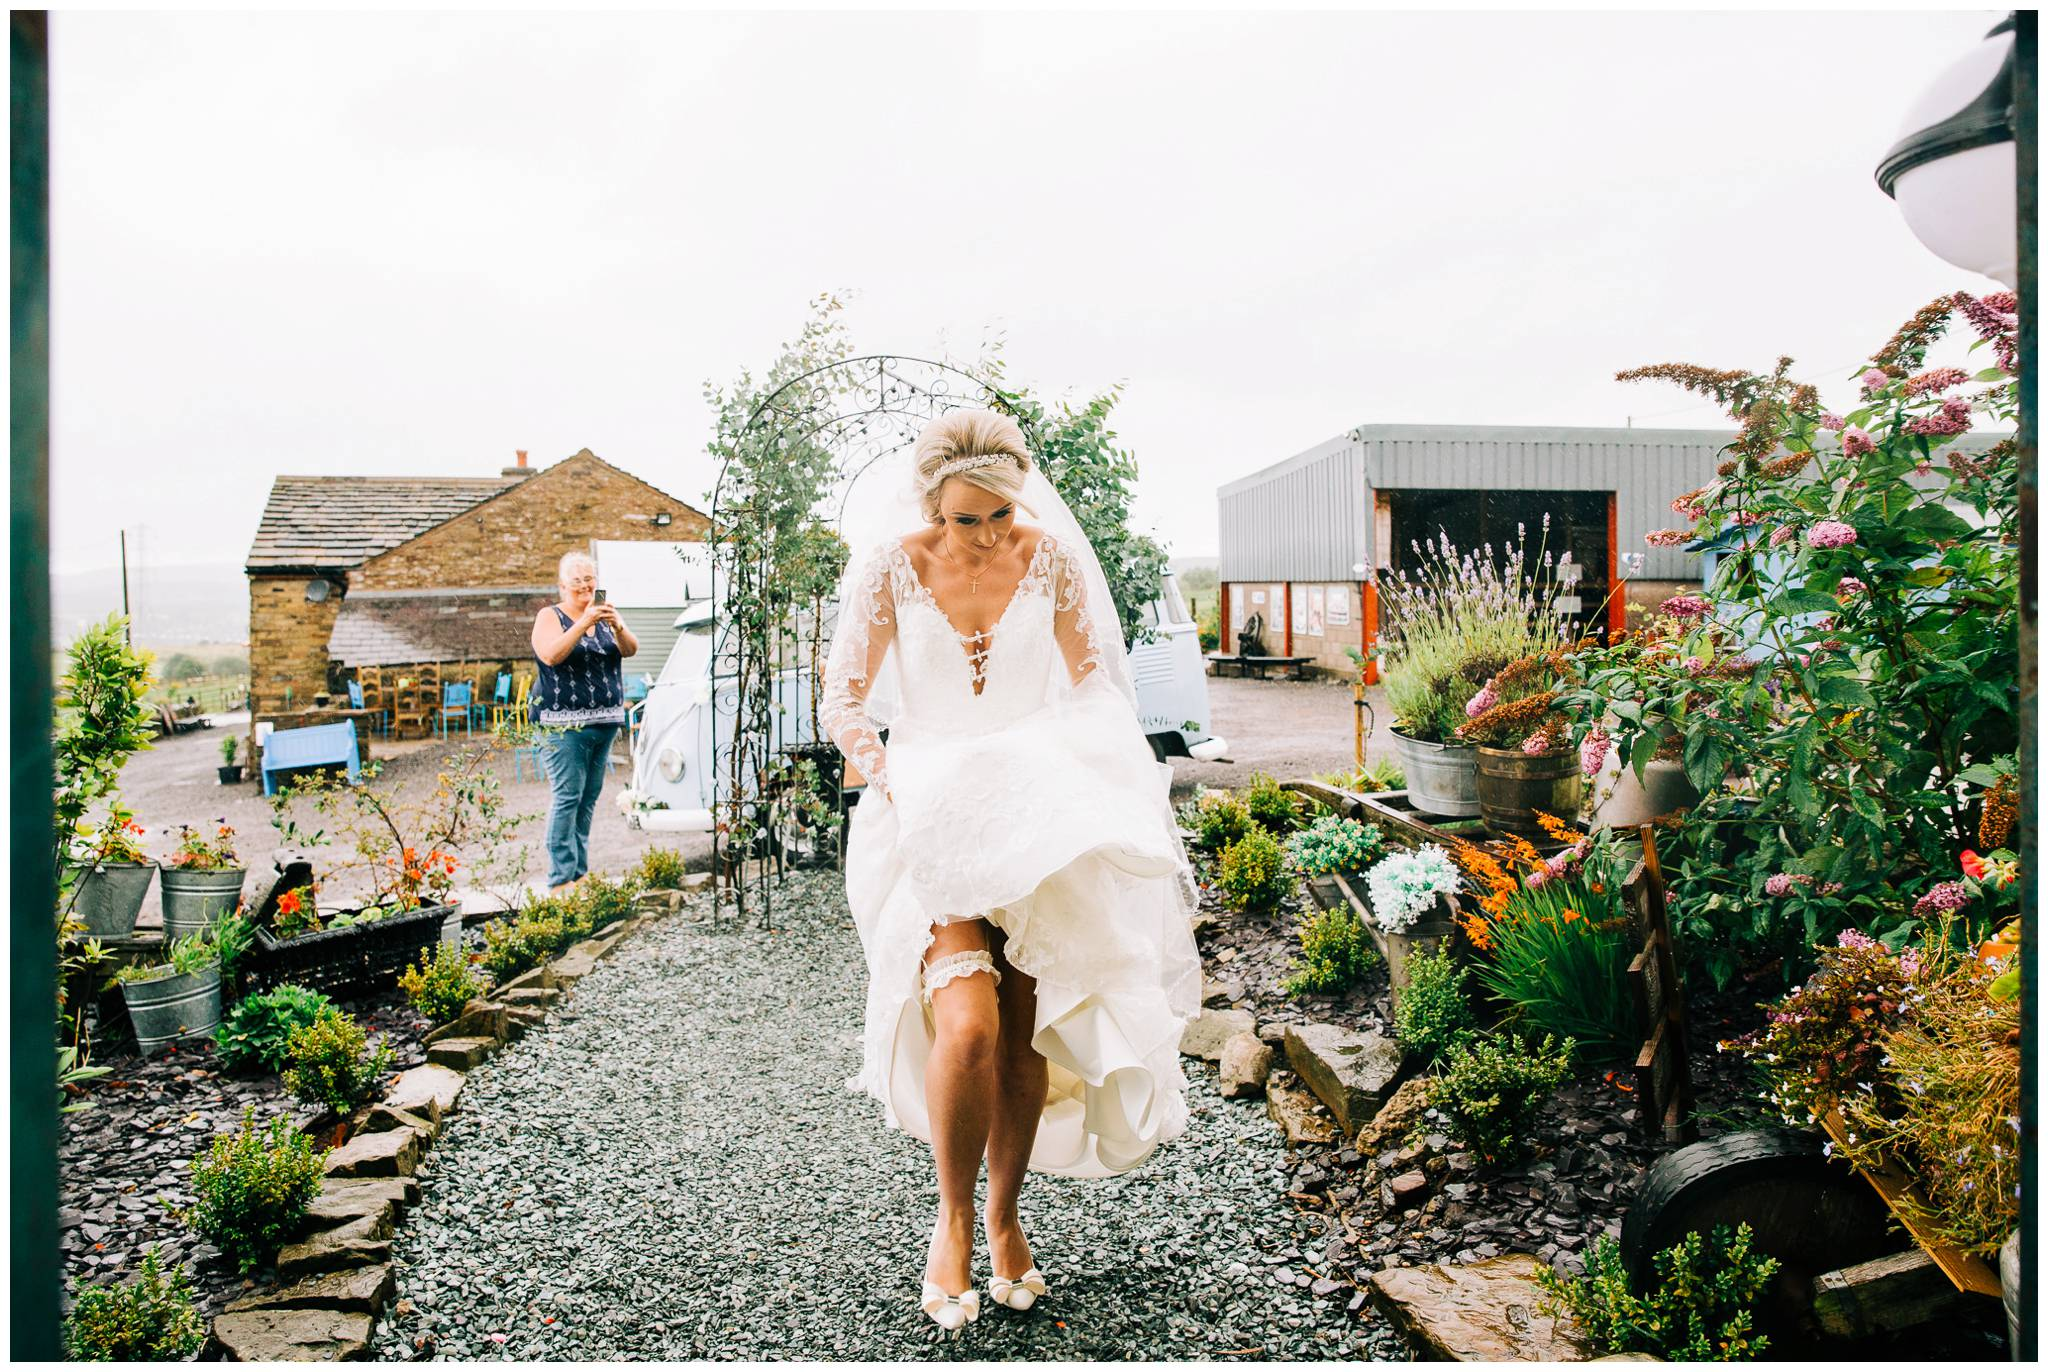 Festival wedding at Wellbeing Farm  - Bolton Wedding Photographer_0018.jpg